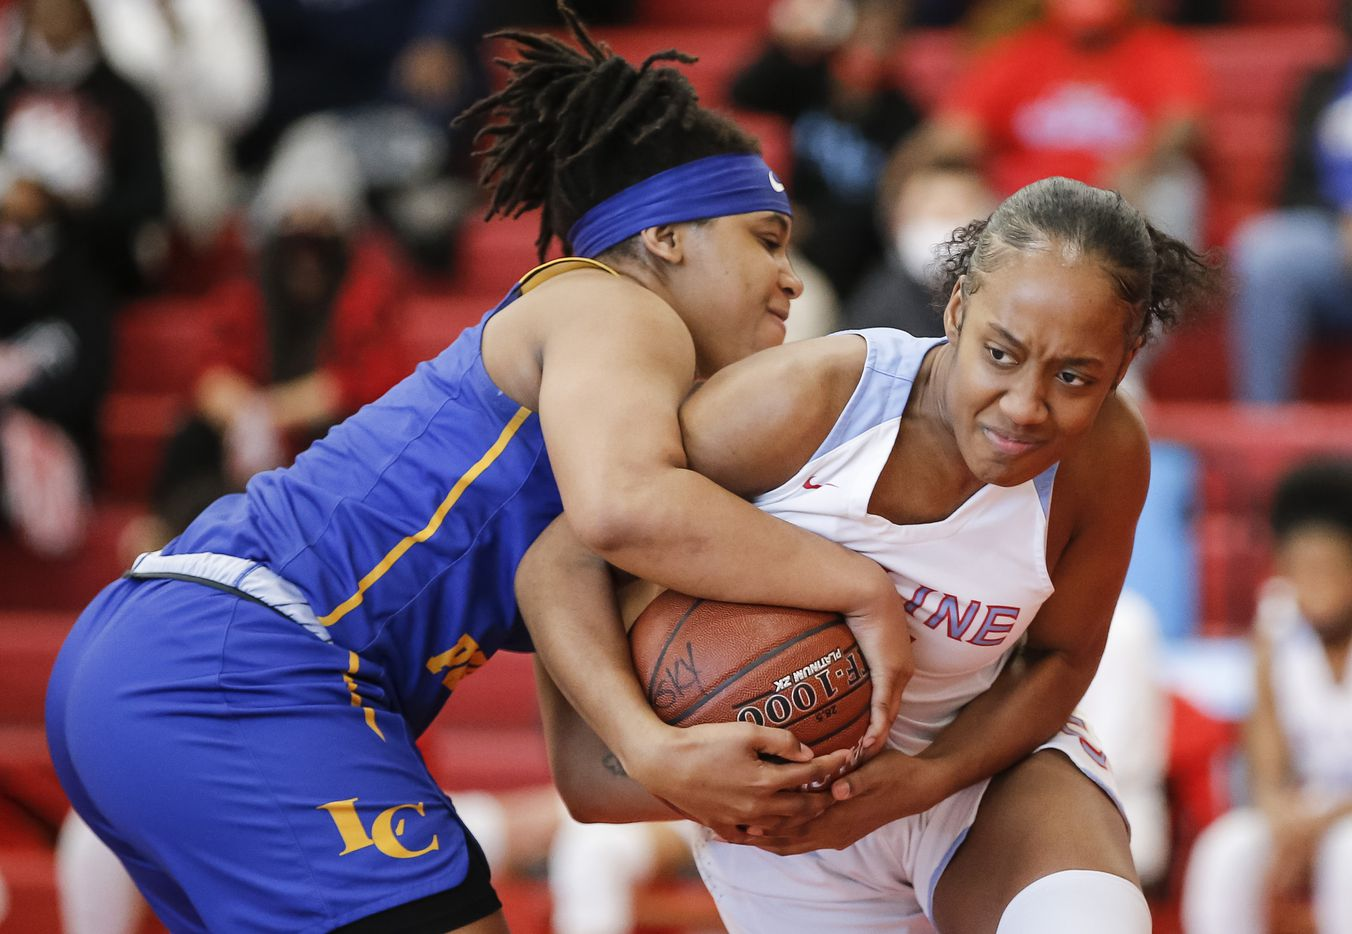 Lakeview Centennial junior Taliyah Harris, left, battles Skyline senior Taylor Copeland for the ball during a girls basketball first-round playoff game at Hillcrest High School in Dallas, Saturday, February 13, 2021. Skyline won 49-42. (Brandon Wade/Special Contributor)